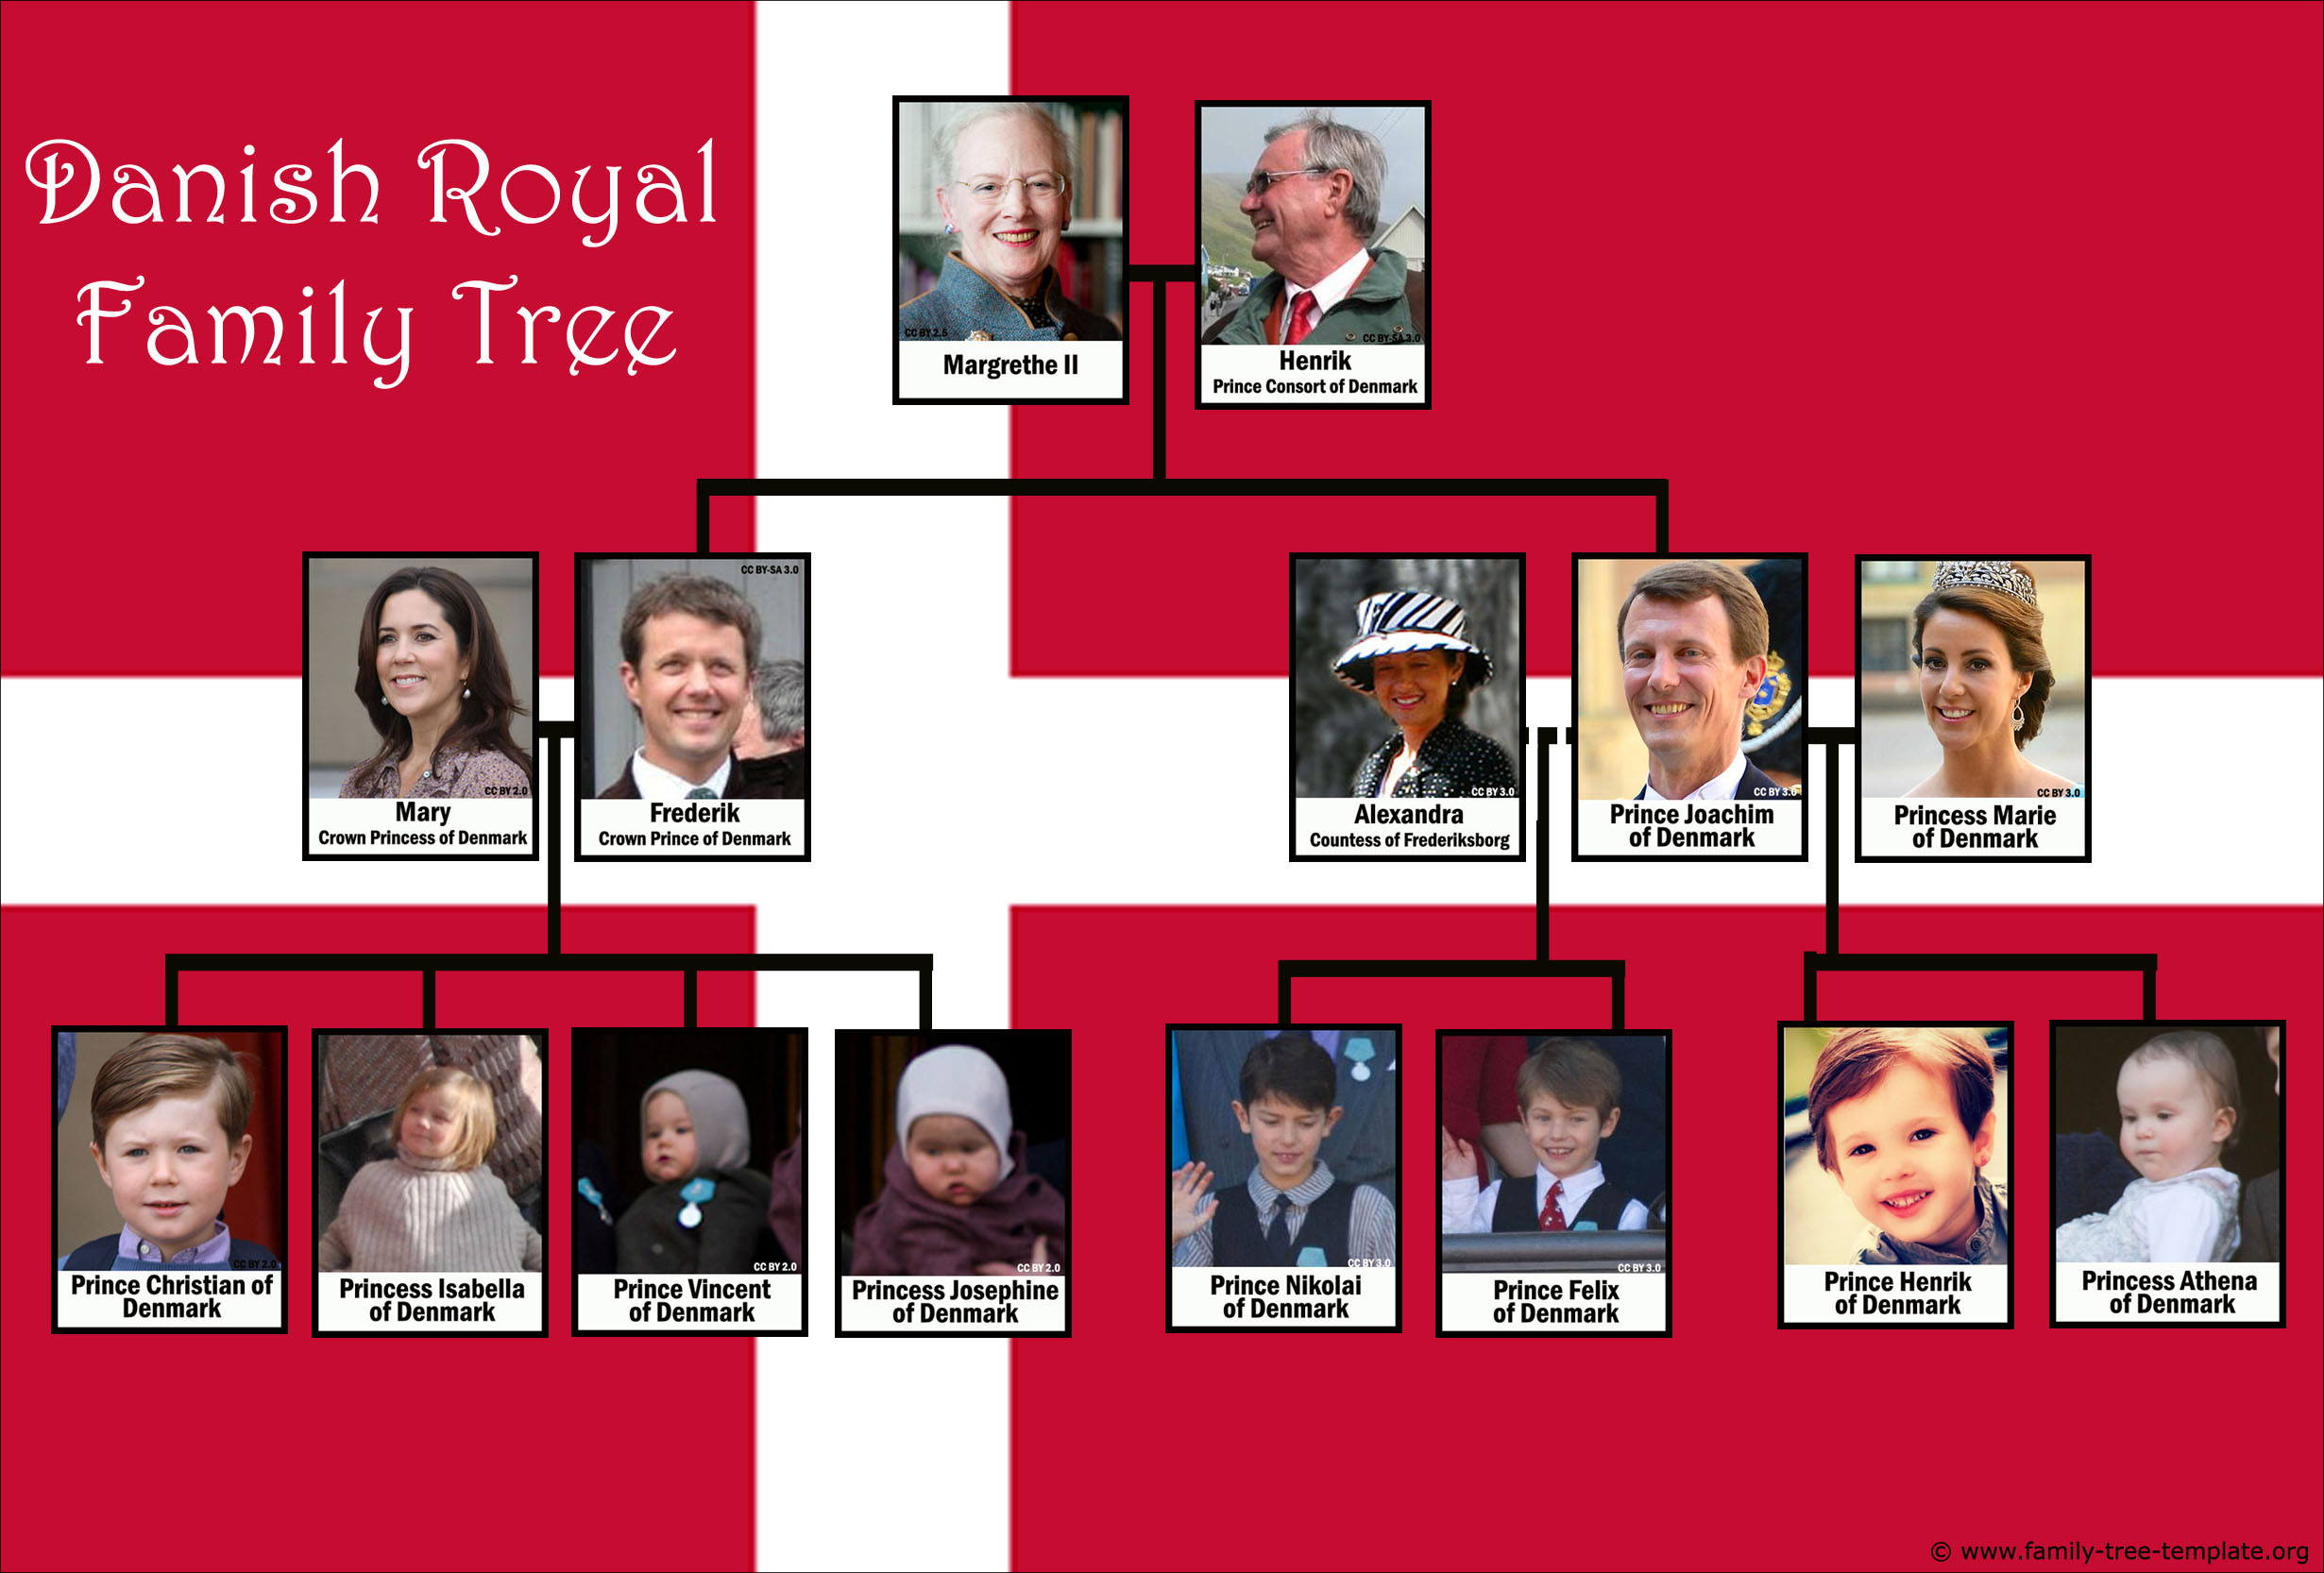 Family tree of the Kingdom of Denmark with Queen Margrethe II.